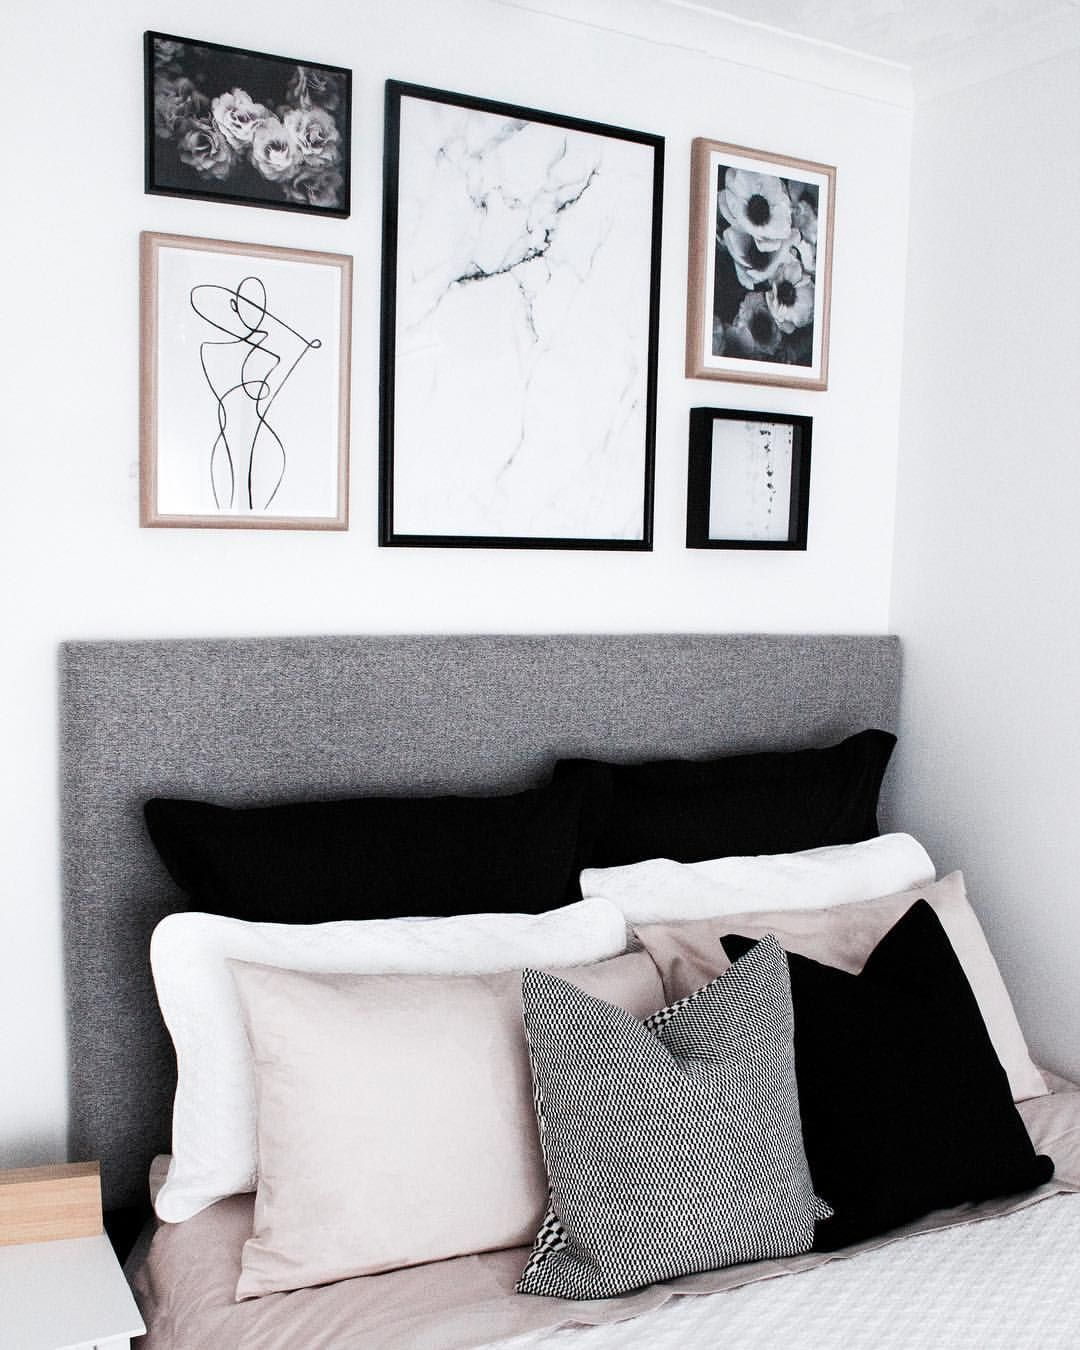 Turn Up Your Decor With These Mesmerizing Living Room Designs Your Modern Home Decor Will Nev Bedroom Wall Decor Above Bed Above Bed Decor Wall Decor Bedroom